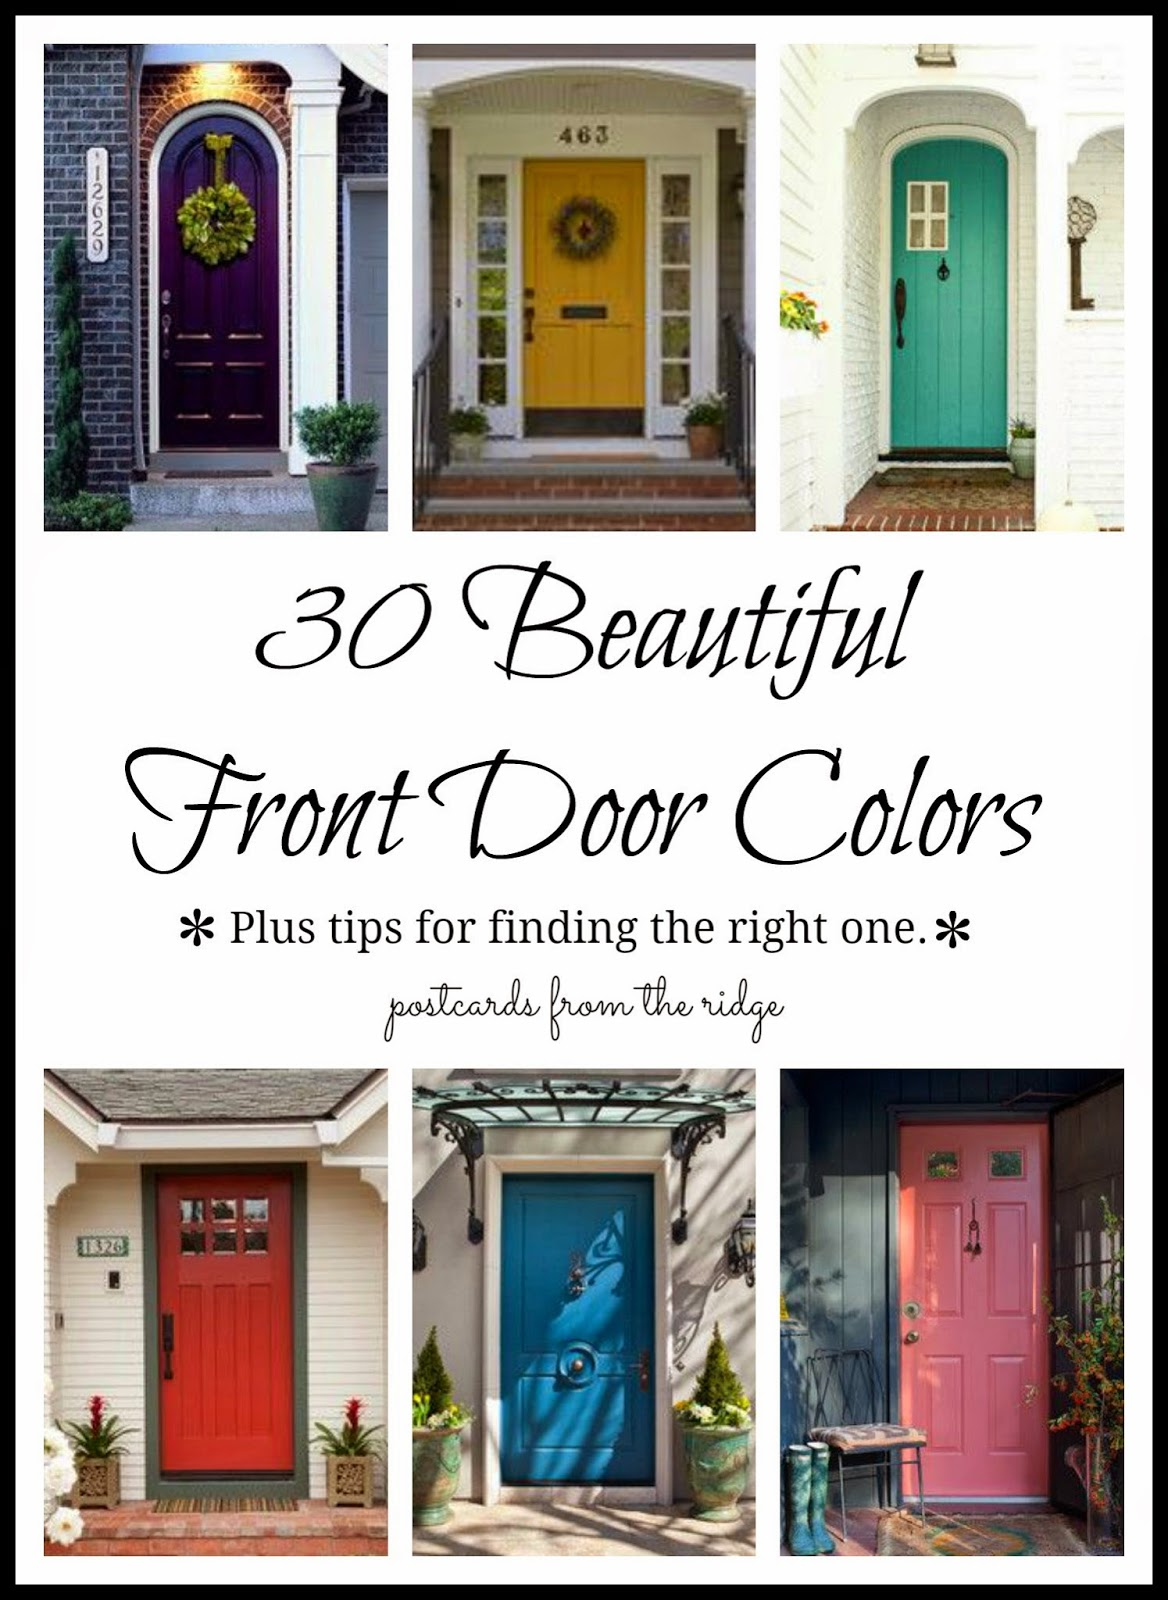 Need Ideas For Your Front Door? See 30 Beautiful Front Door Colors Here: